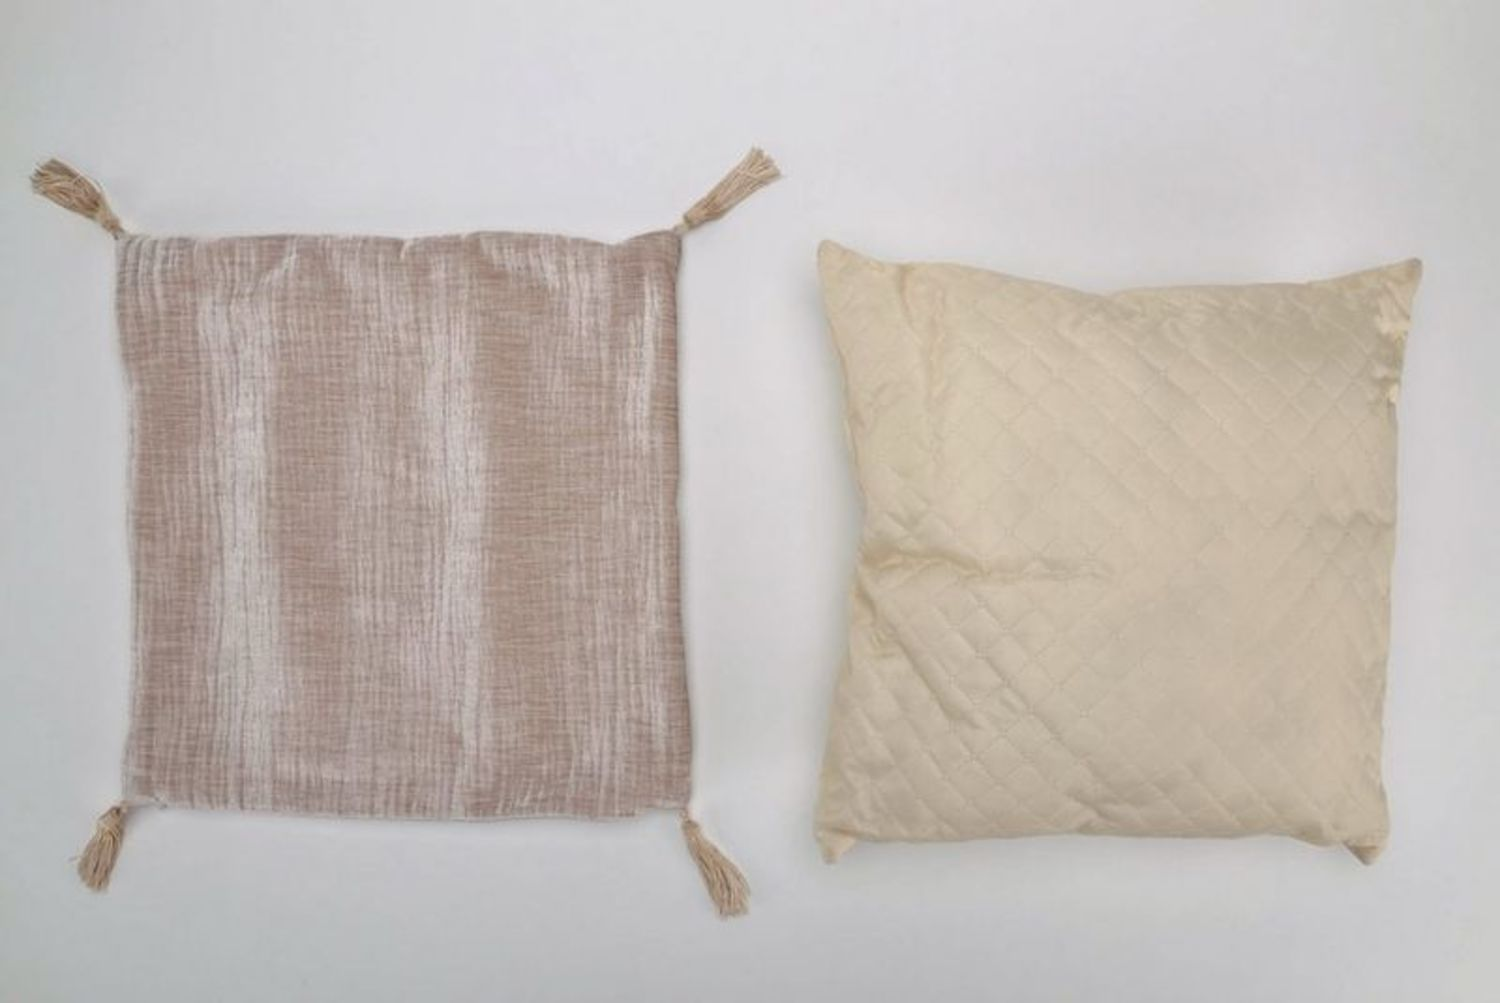 Pillow made from cotton and synthetic down, with tassels photo 3